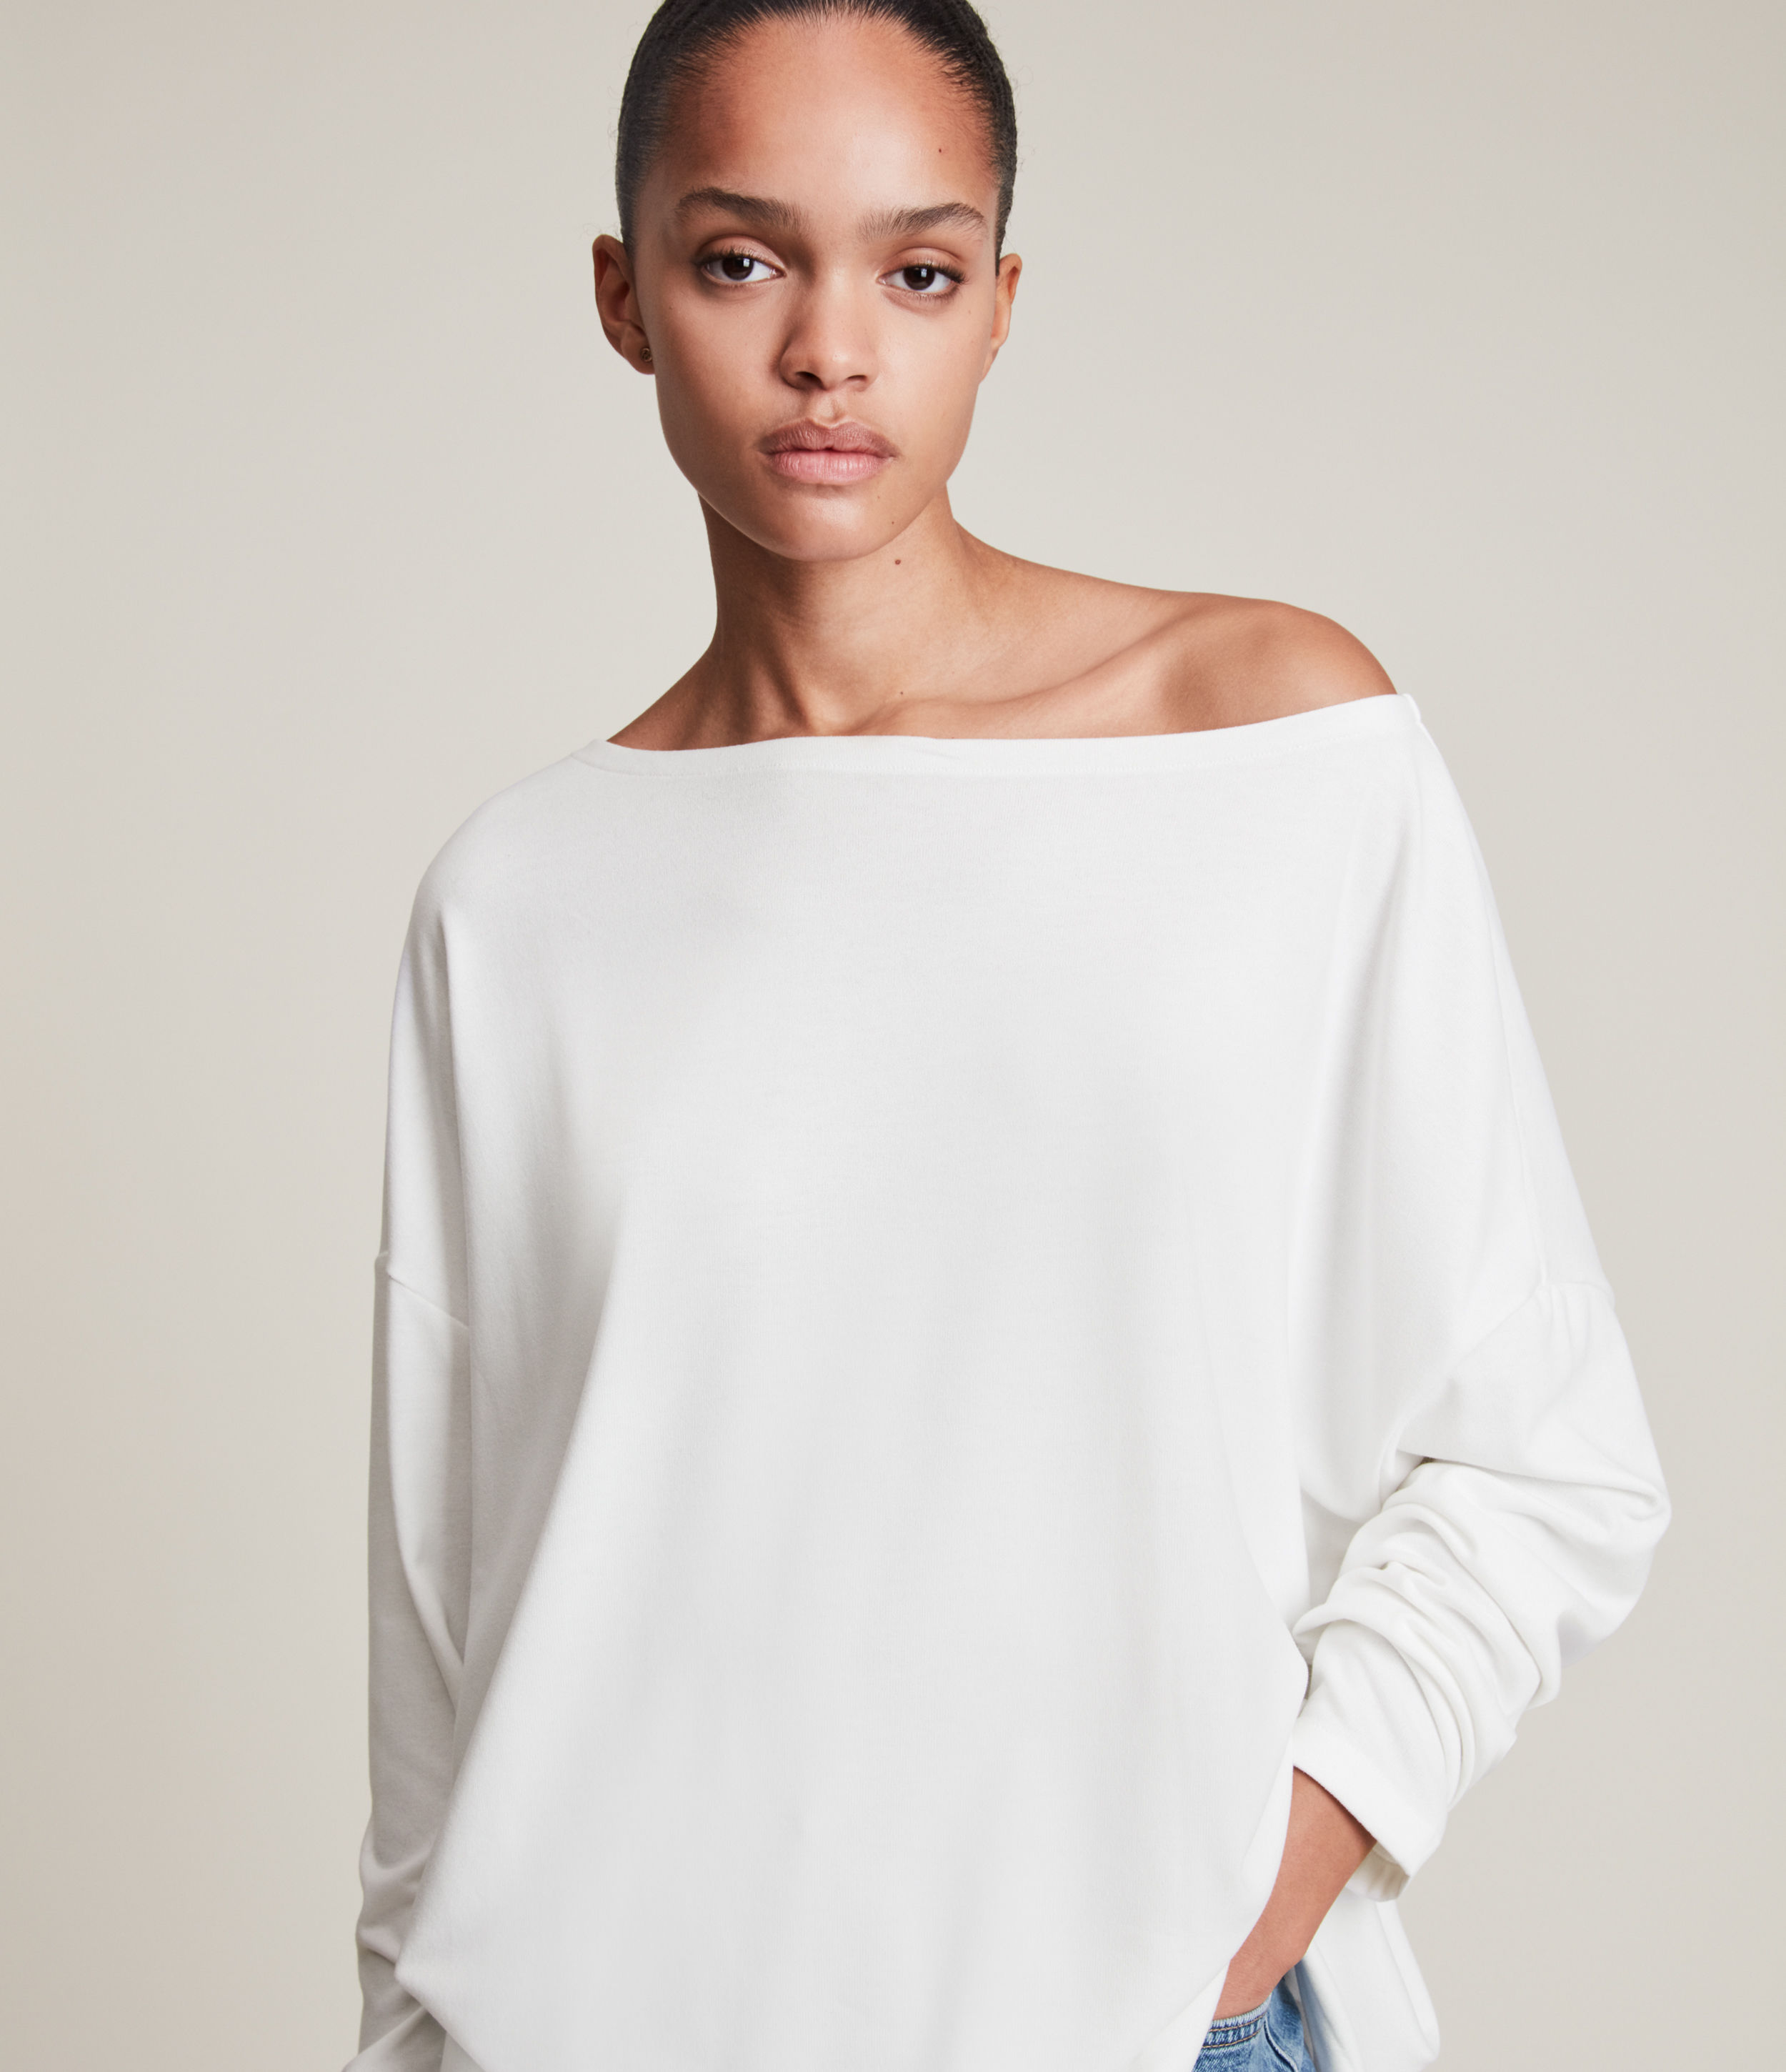 AllSaints Women's Rita Loose and Oversized Supersoft Long Sleeve Top, White, Size: S